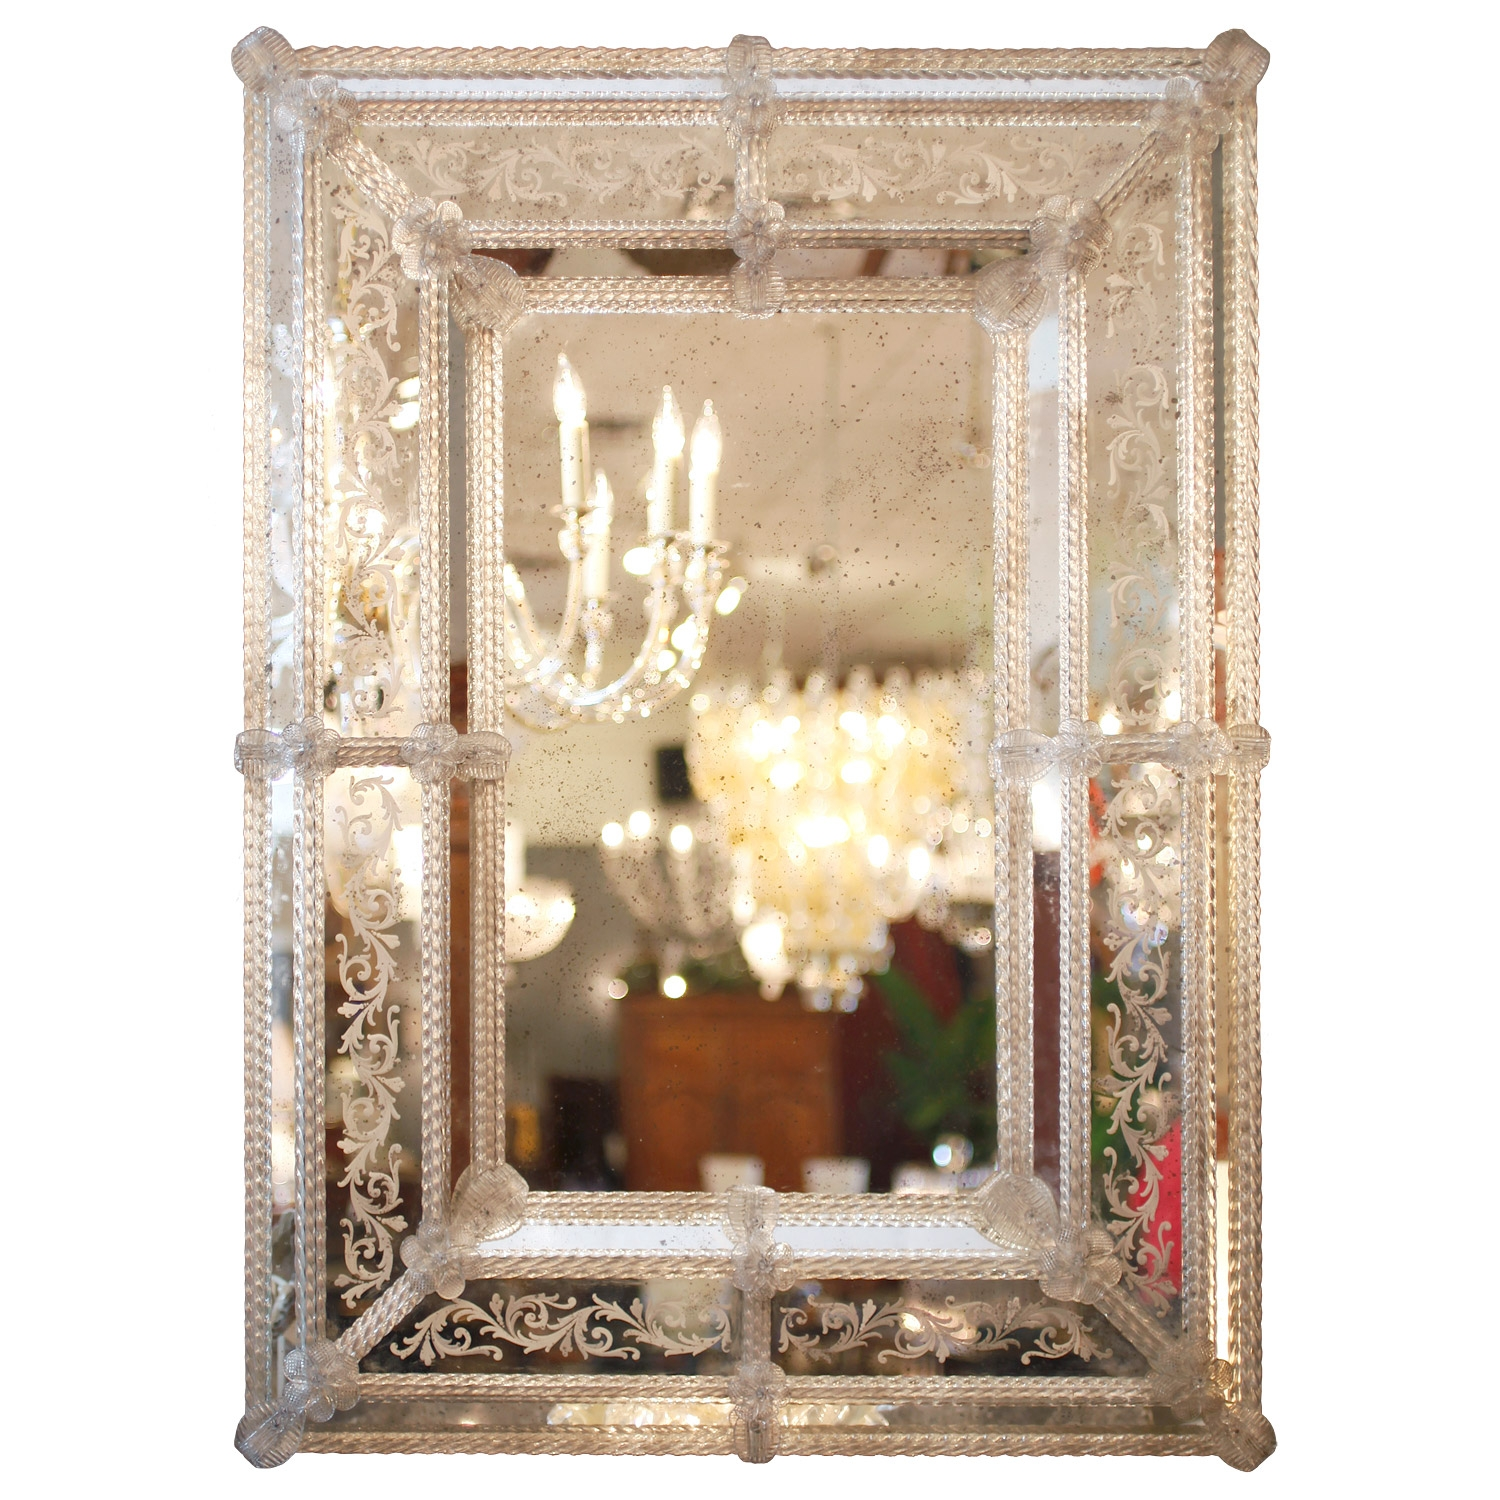 Venetian Etched Glass Mirror Jean Marc Fray In Venetian Etched Glass Mirror (Image 13 of 15)